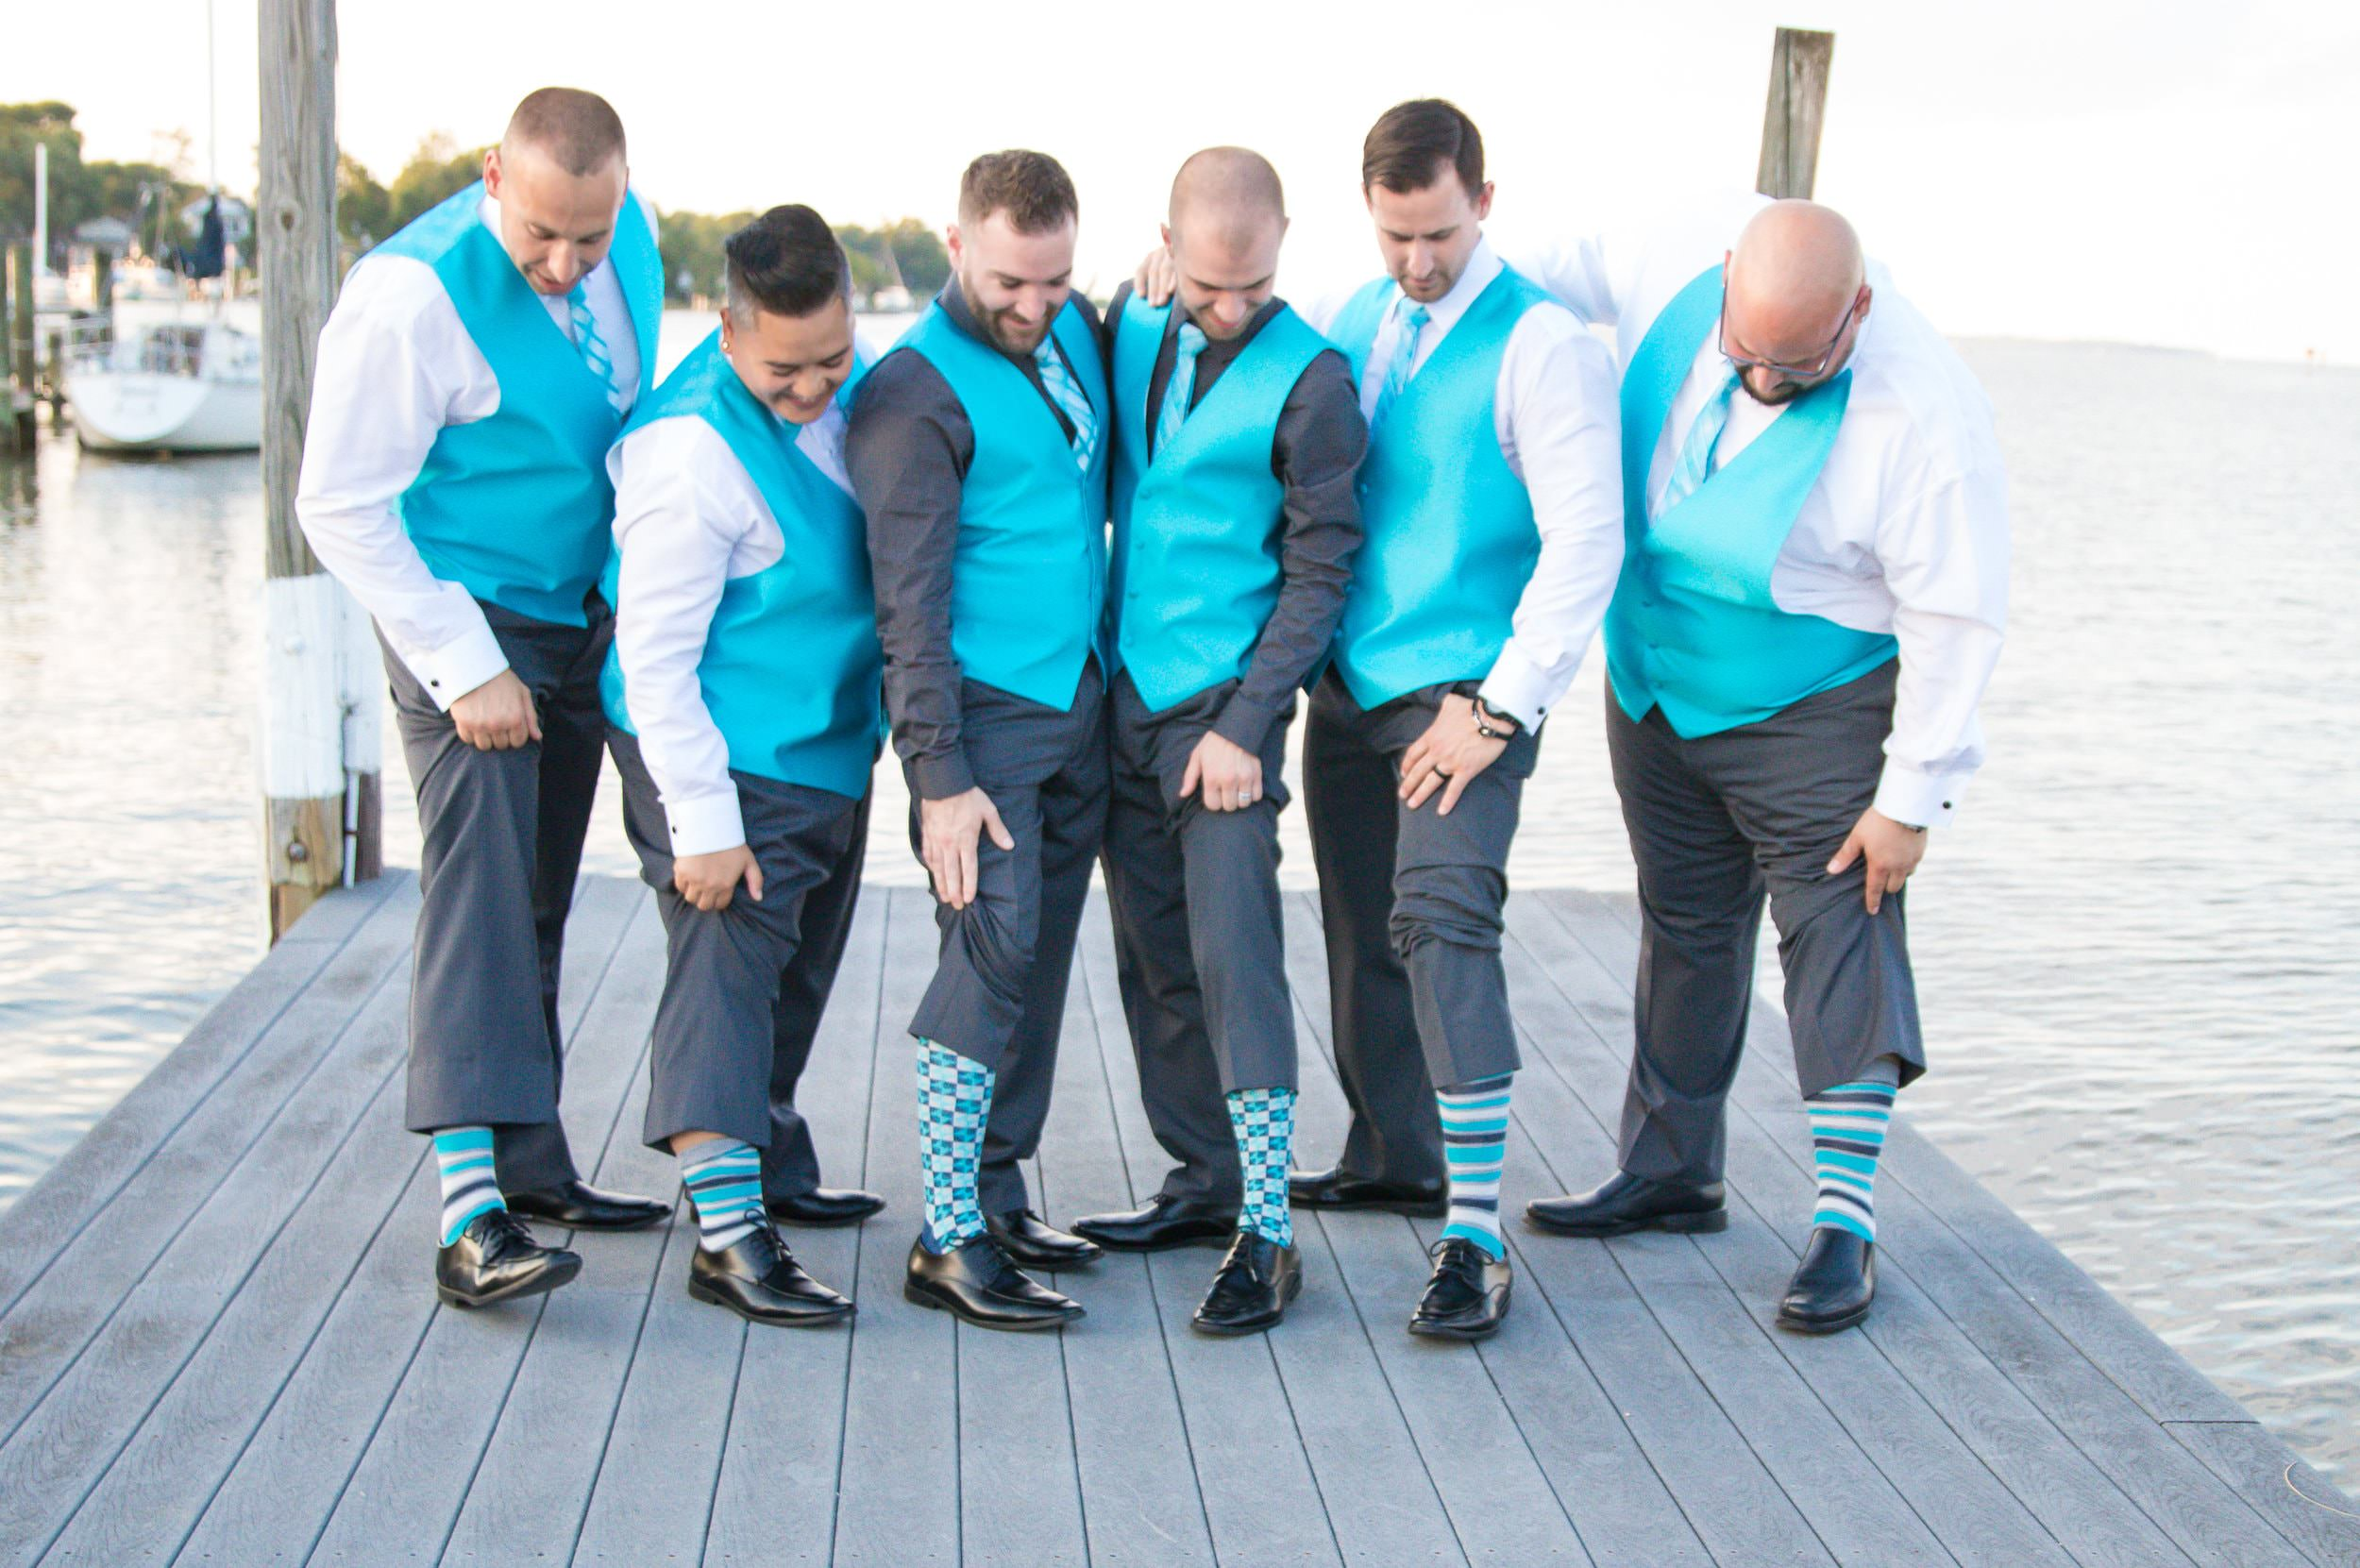 Socks? How about fun matching socks for this crew!